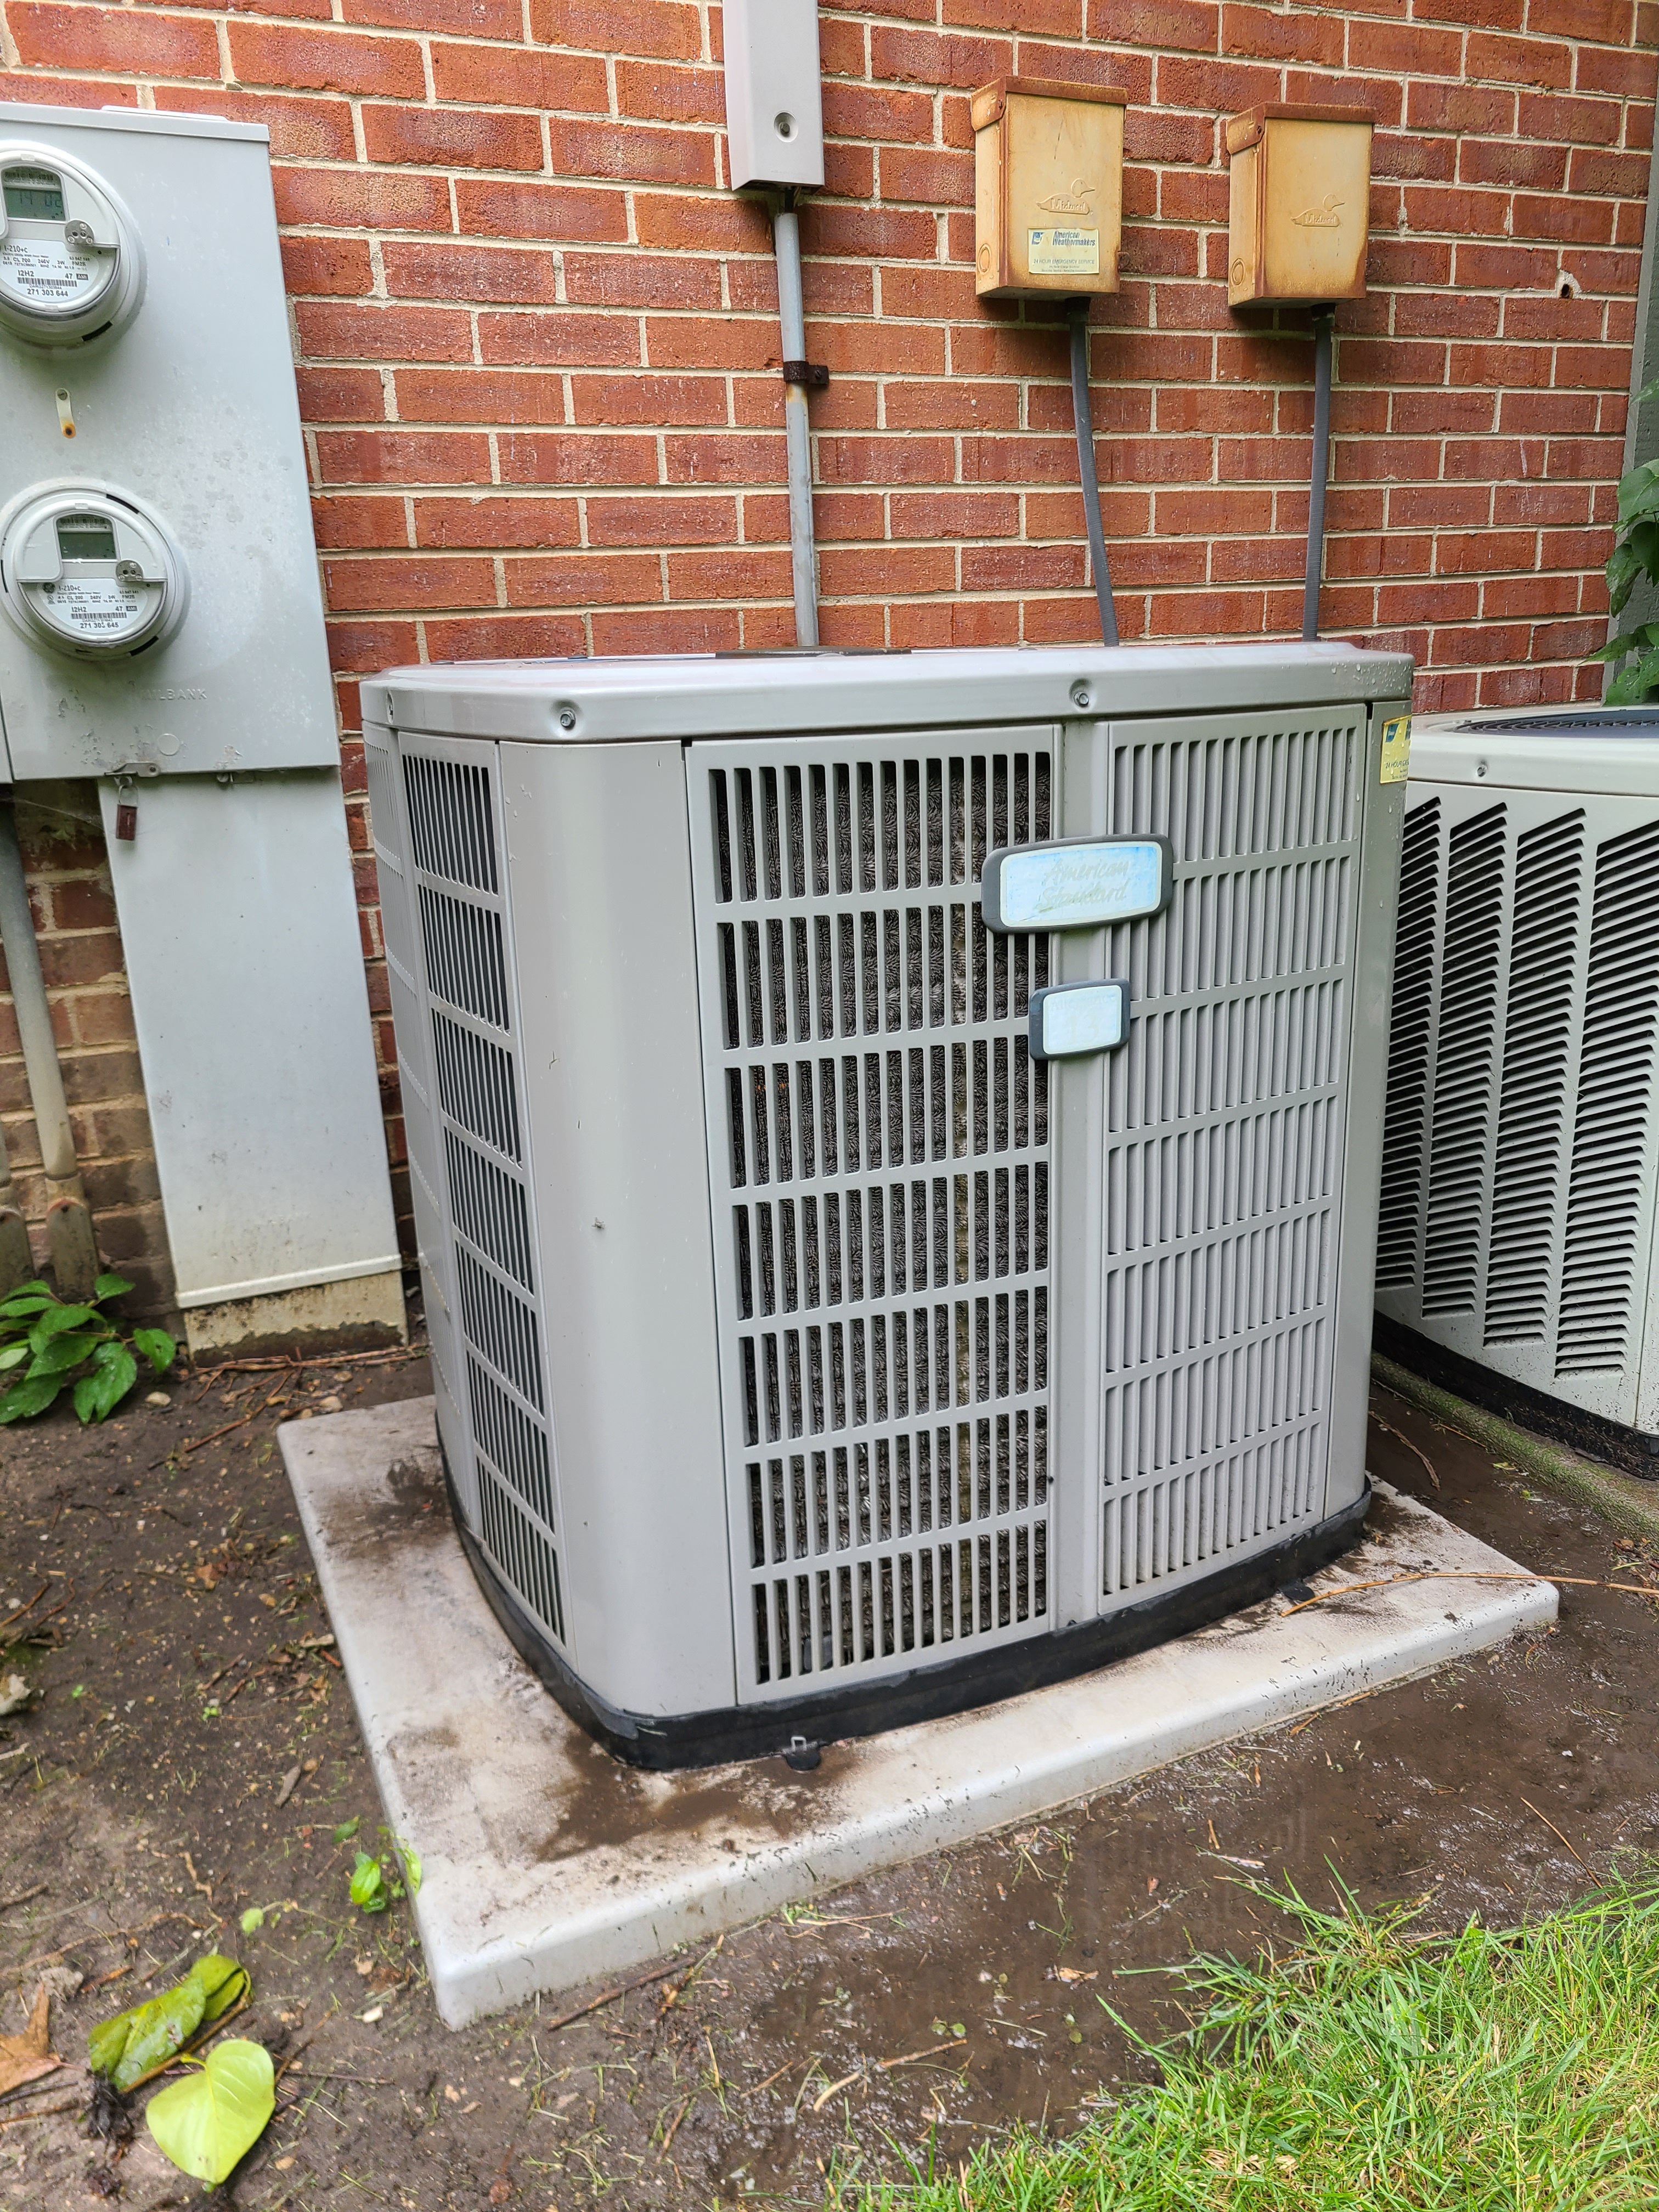 American Standard r410a system cleaned and tested